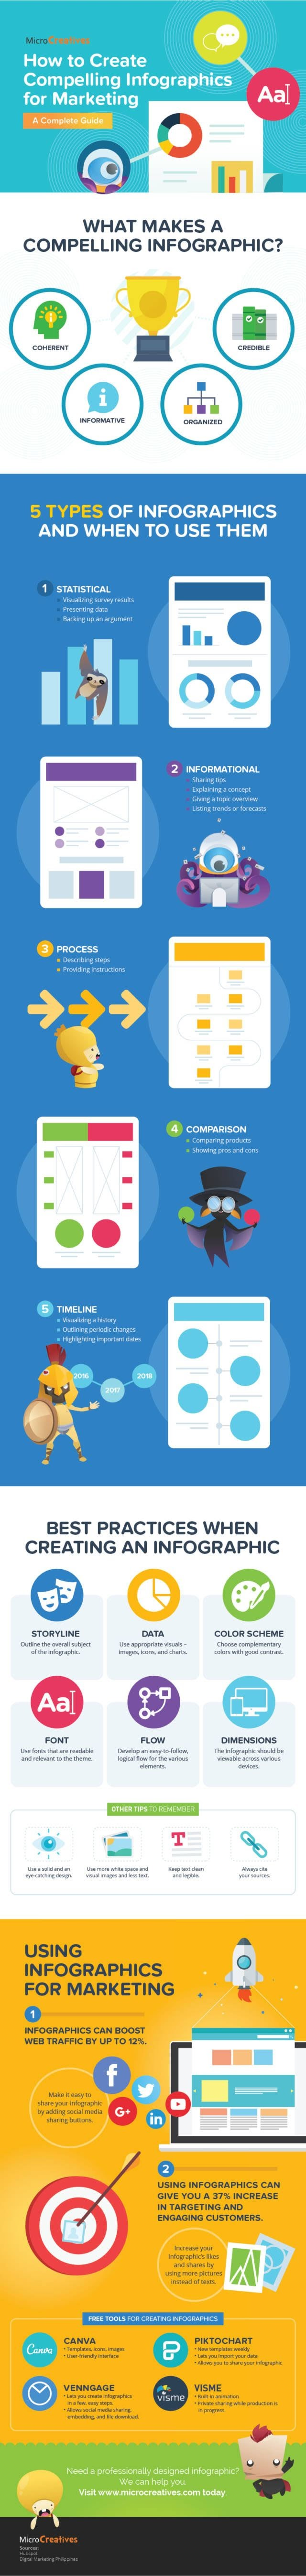 How To Create Compelling Infographics For Marketing #infographic